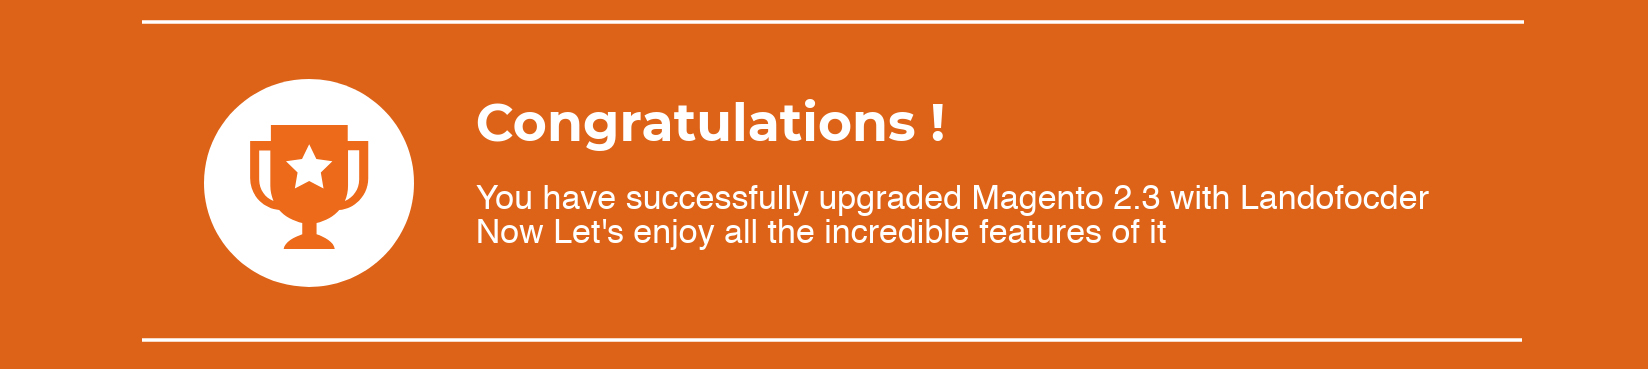 upgrade magento 2.3 successfully